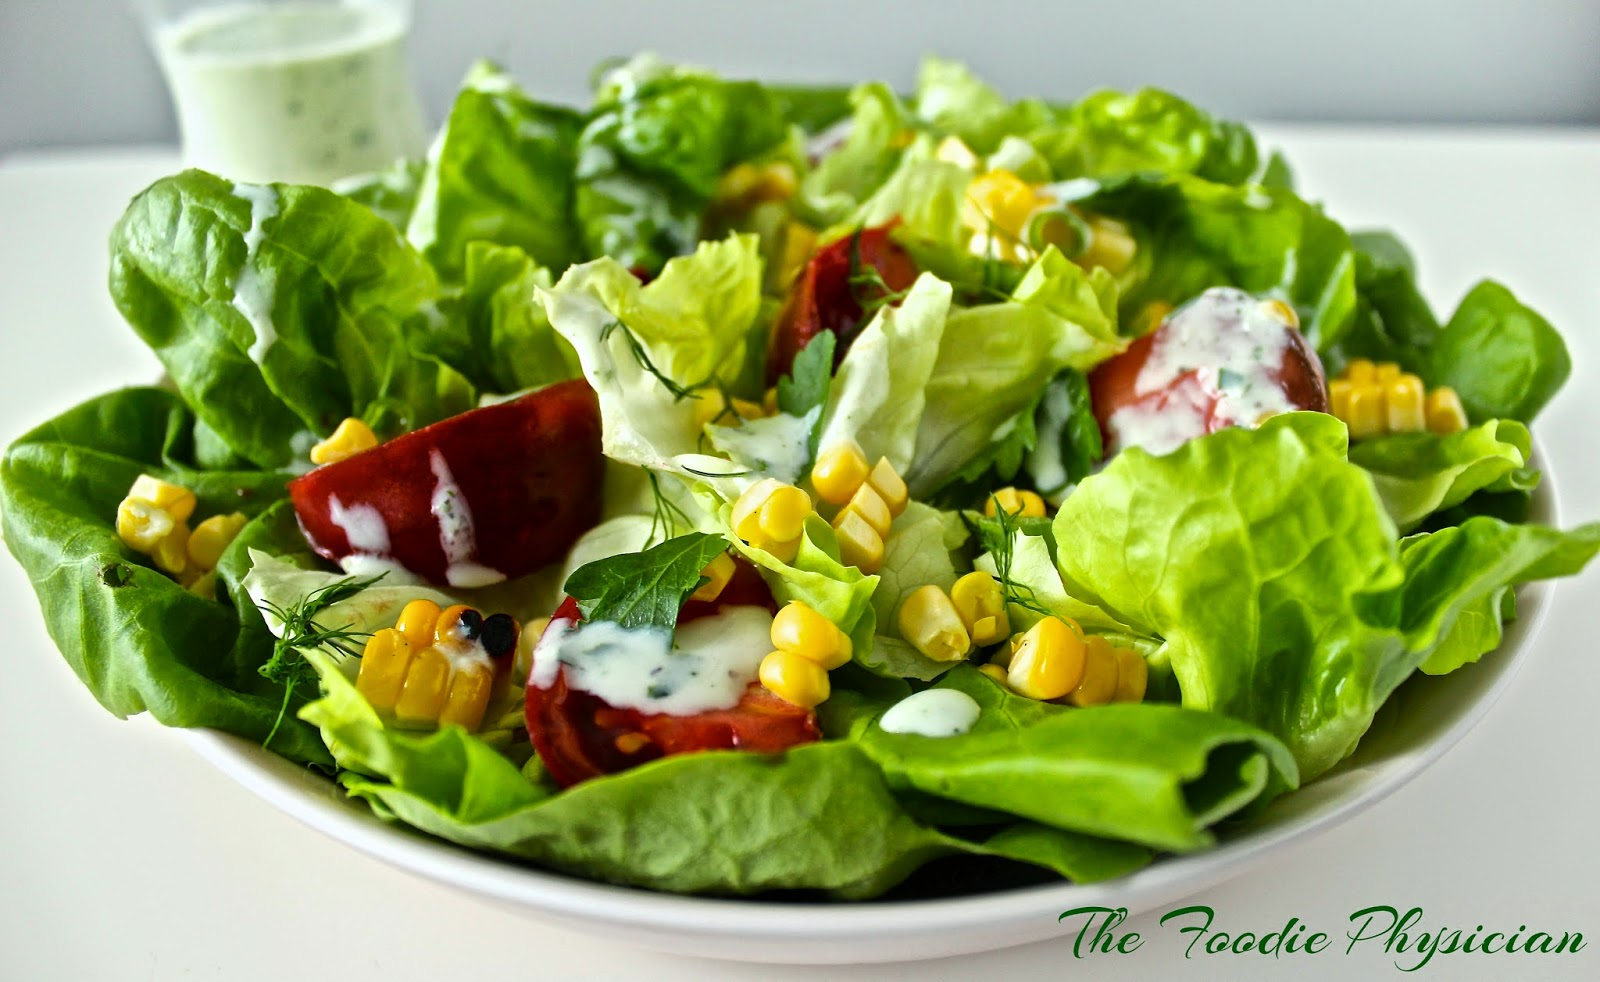 The Foodie Physician: Dining with the Doc: Butter Lettuce ...